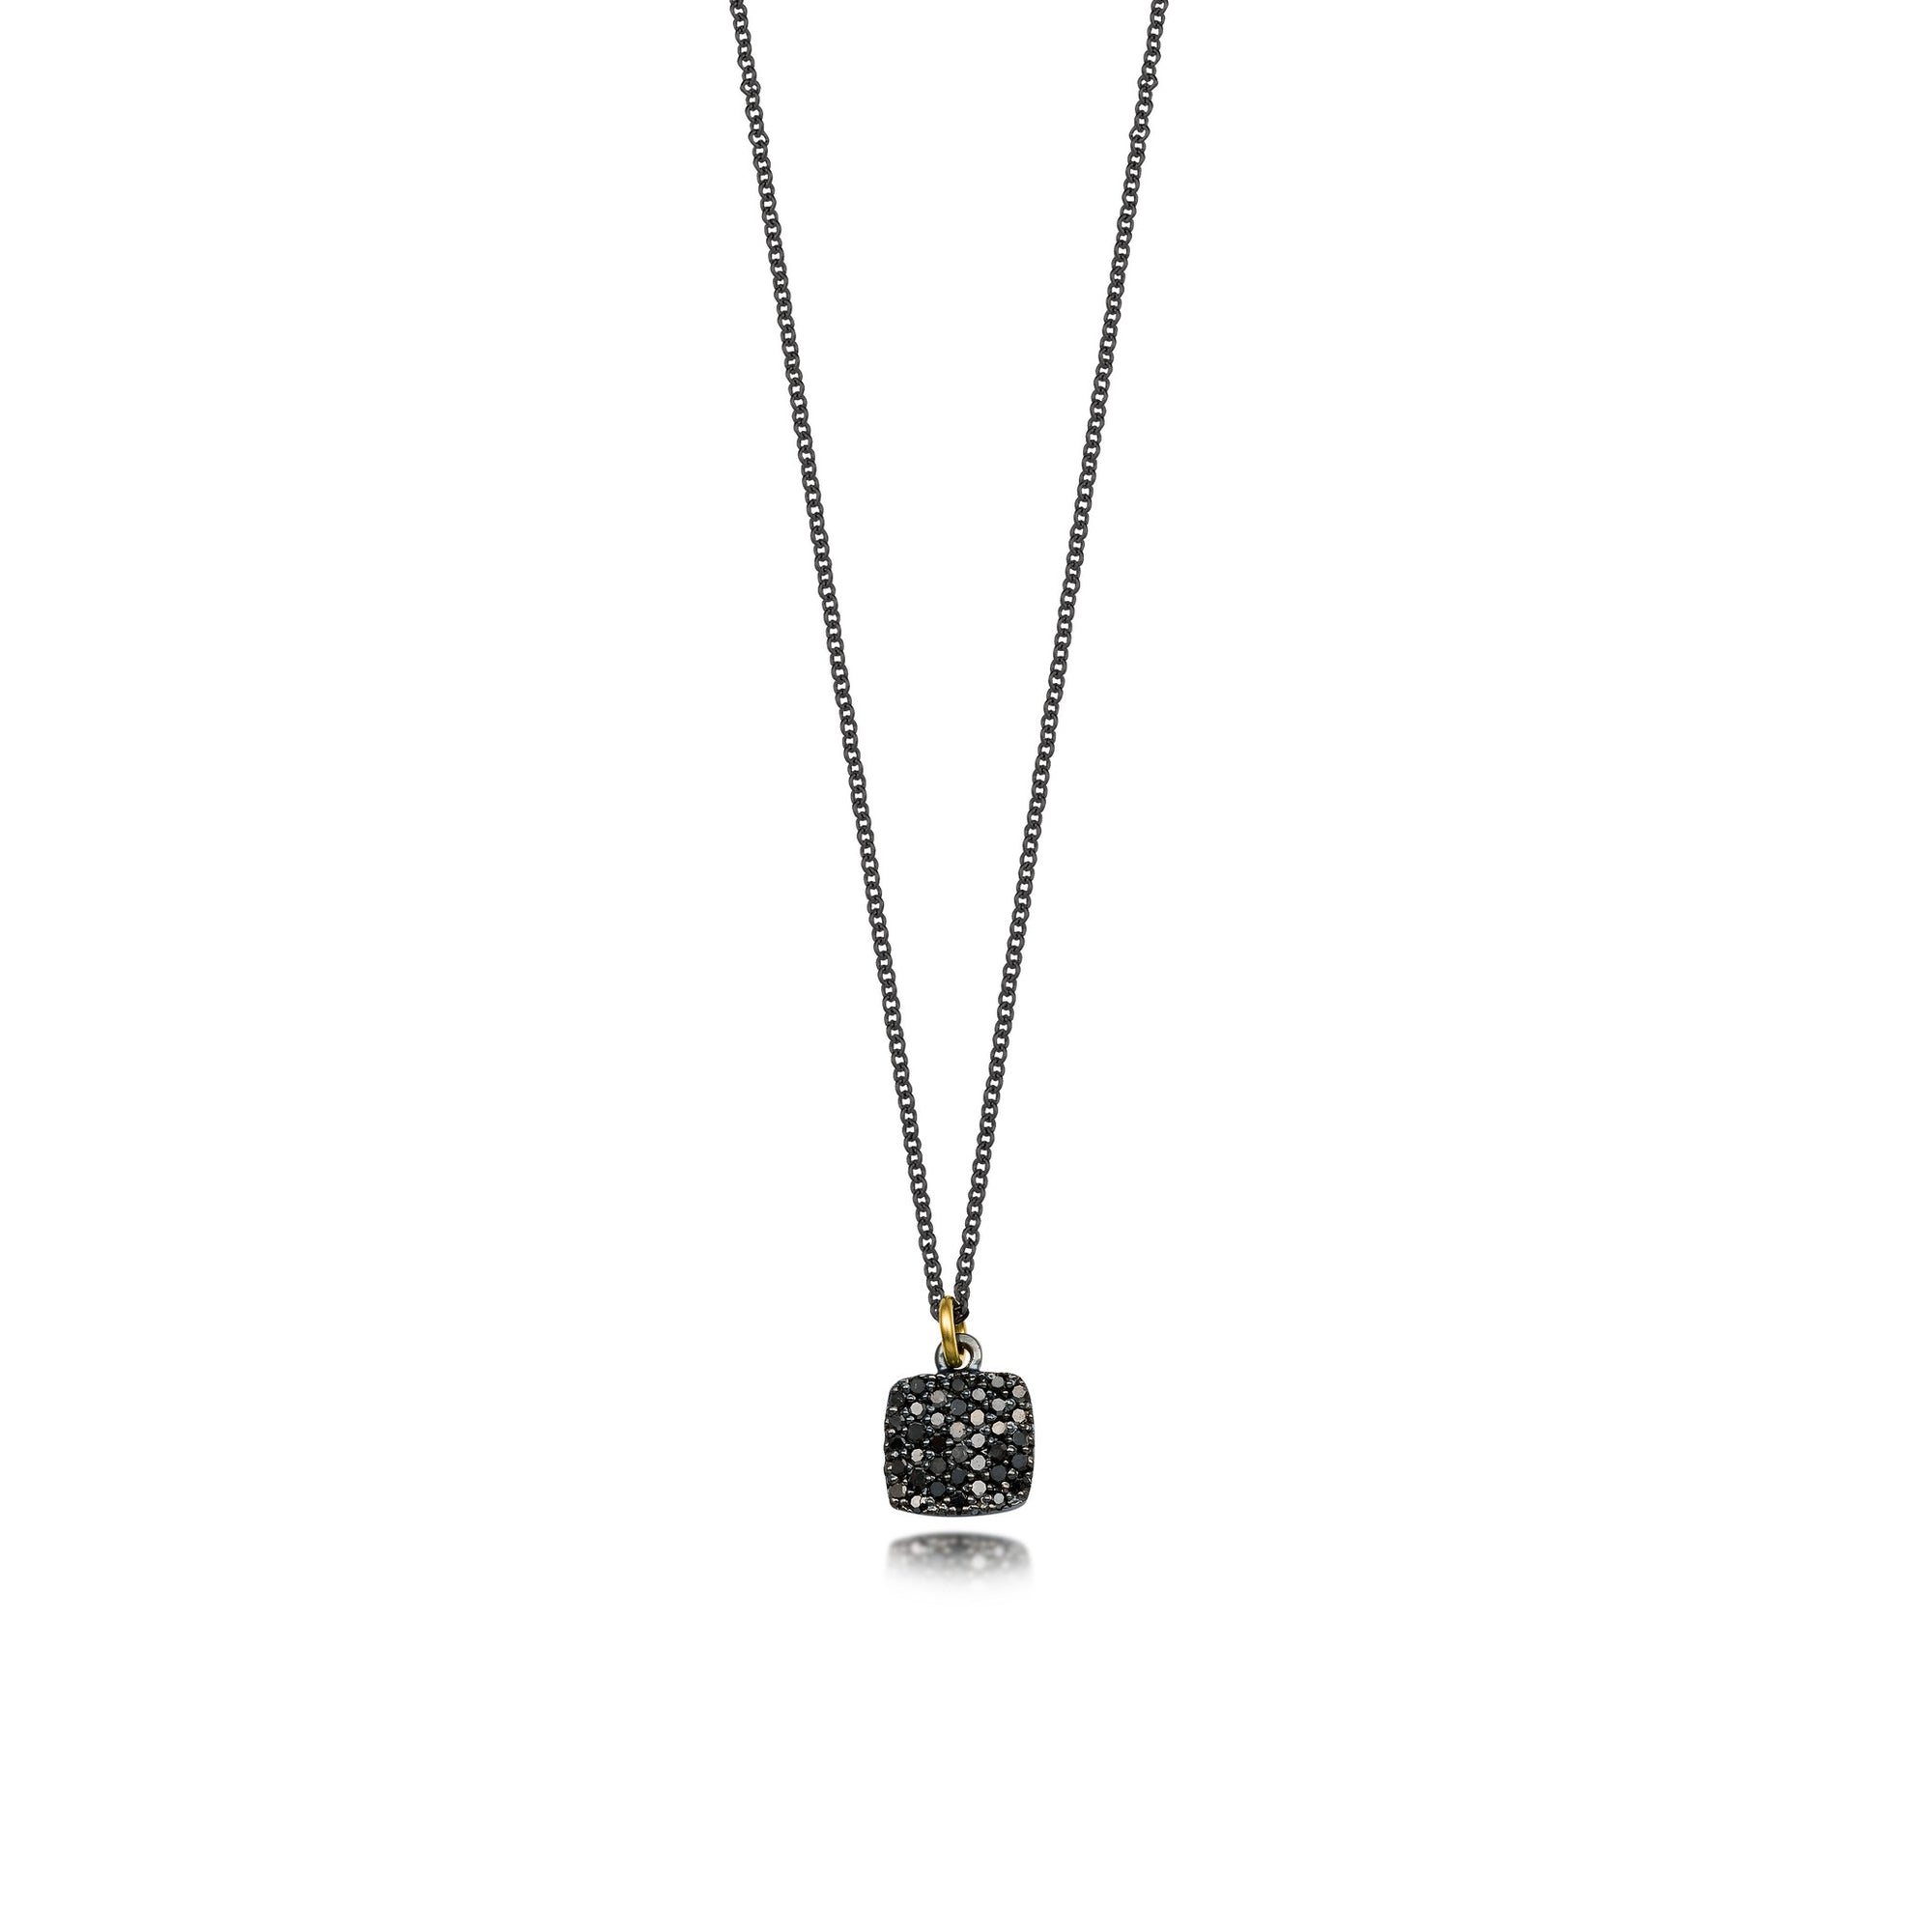 black shop necklace forge strout diamond with img pendant